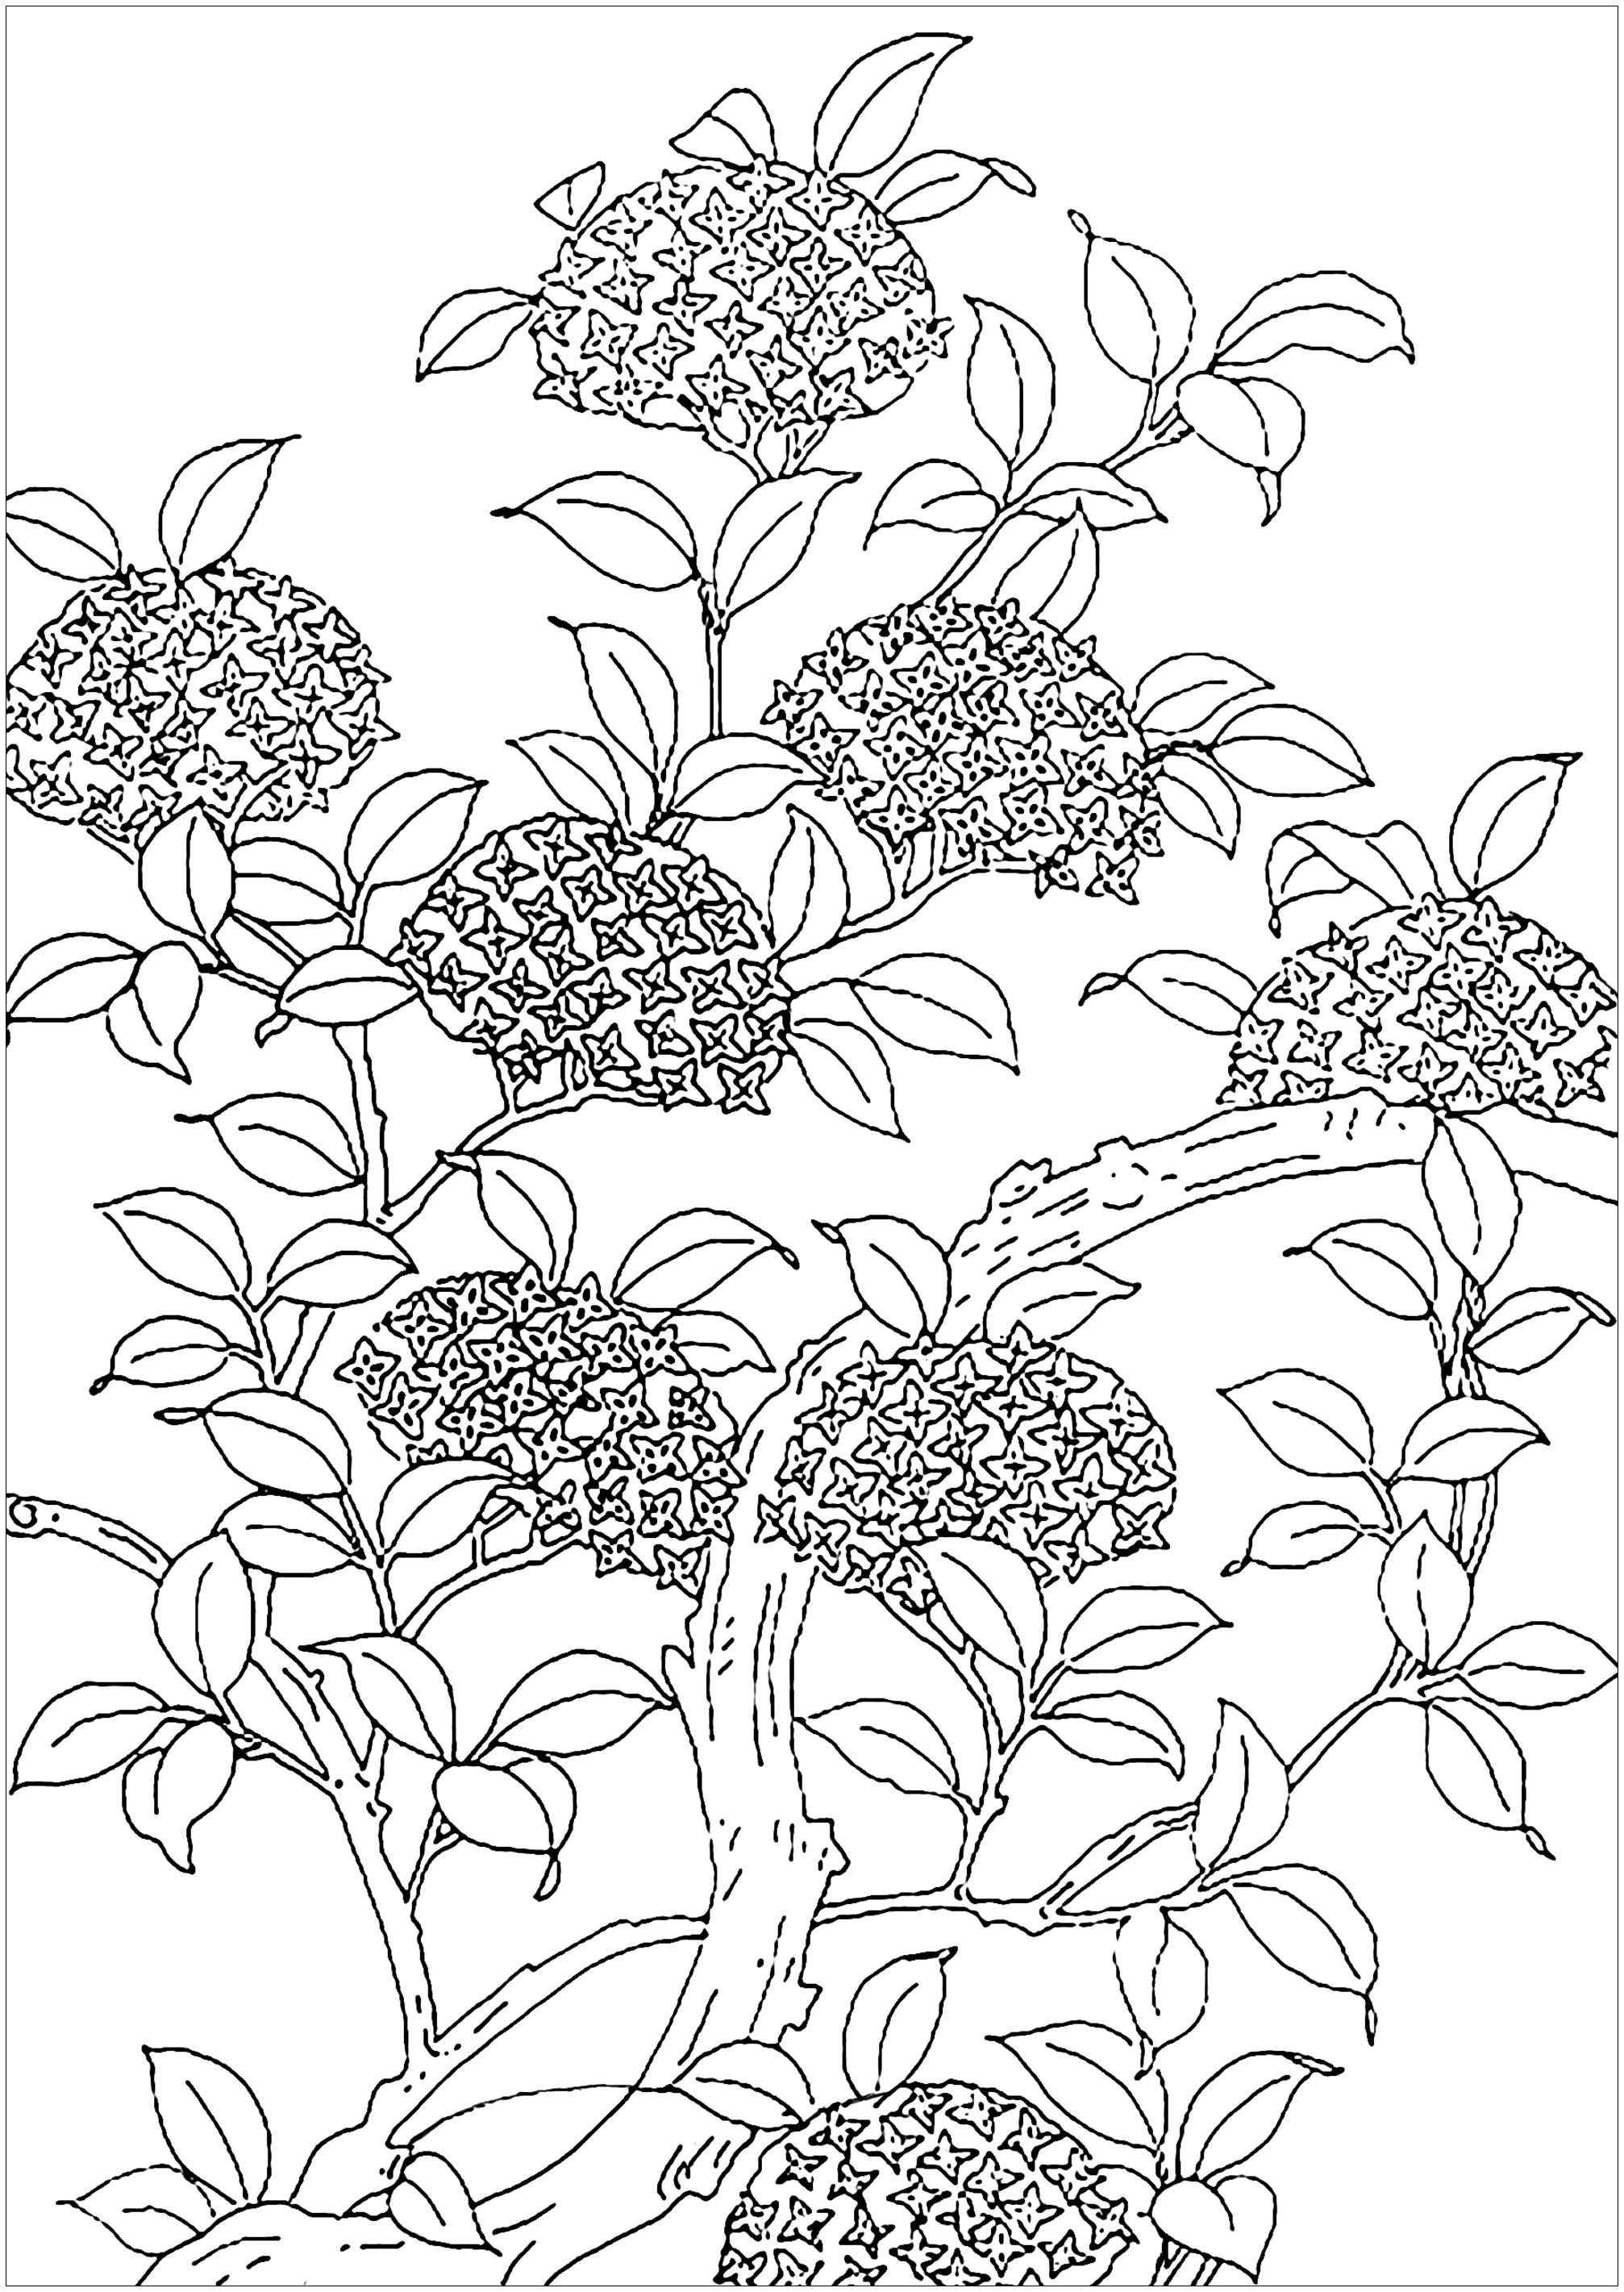 coloring pages trees free printable tree coloring pages for kids cool2bkids trees pages coloring